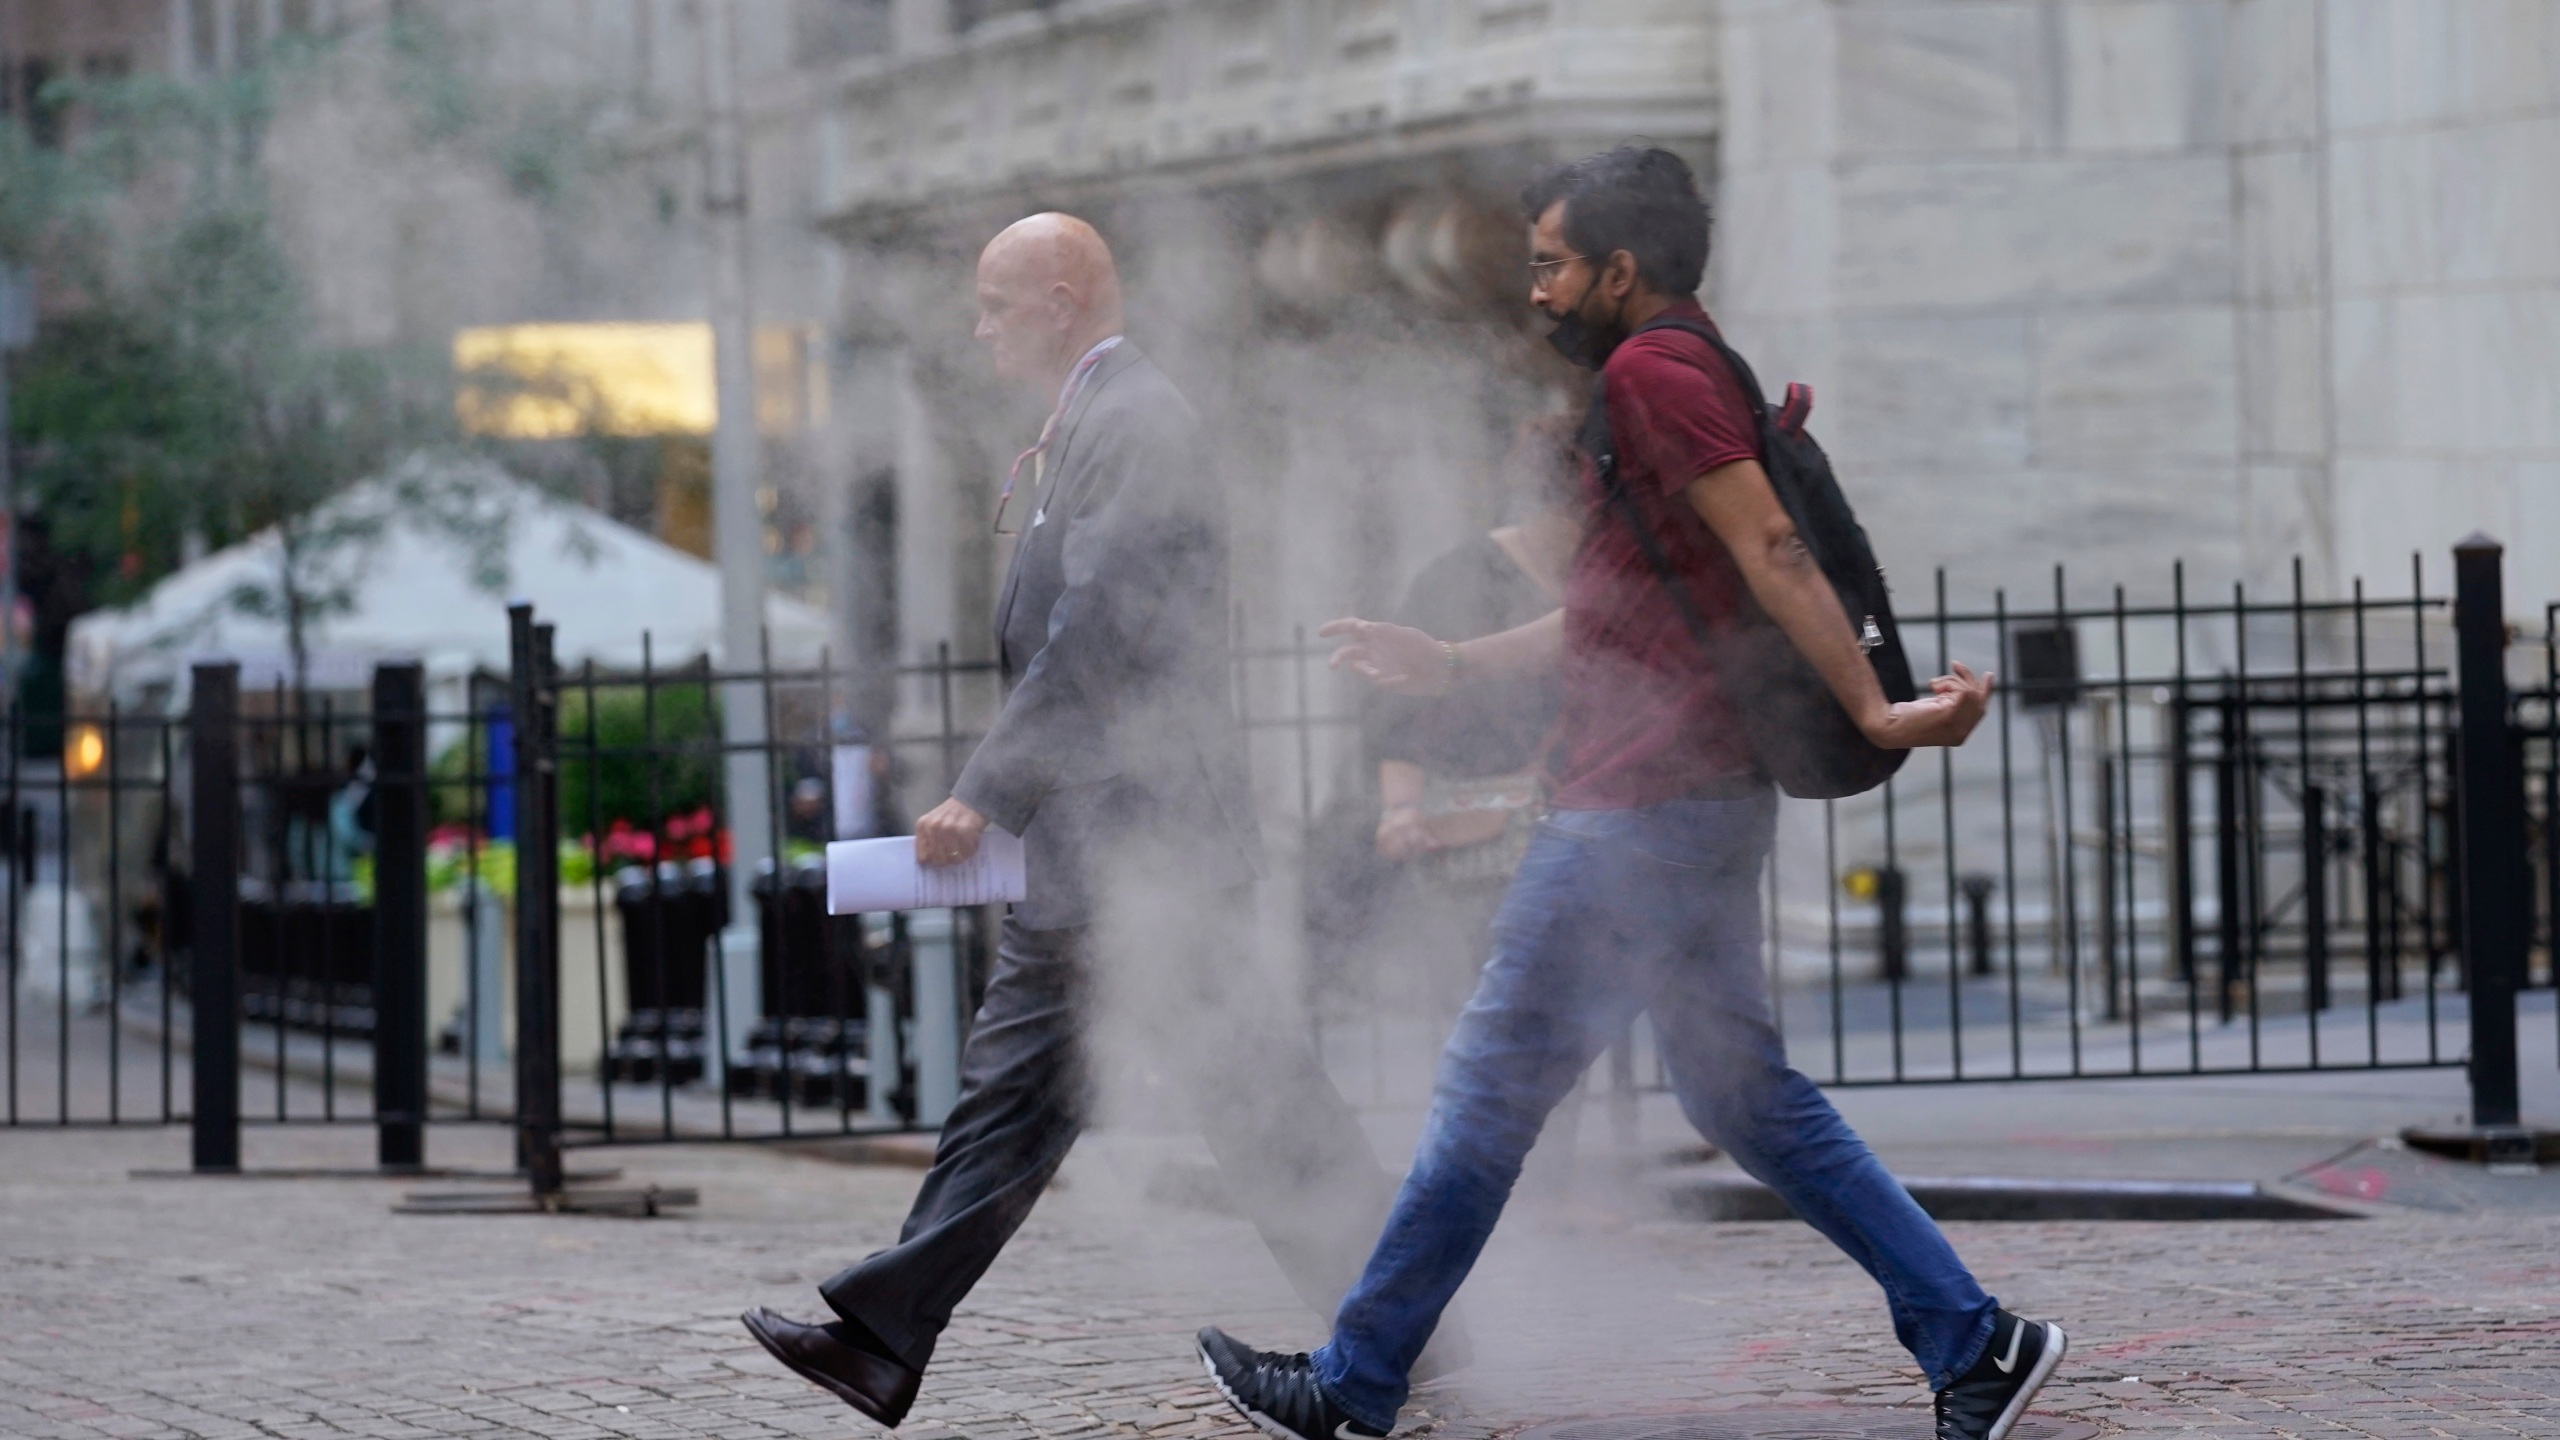 In this June 16, 2021 file photo, people walk through steam from a street grating during the morning commute in New York. Companies around the U.S. are scrambling to figure out how to bring employees back to the office after more than a year of them working remotely. Most are proceeding cautiously, trying to navigate declining COVID-19 infections against a potential backlash by workers who are not ready to return. (AP Photo/Richard Drew)